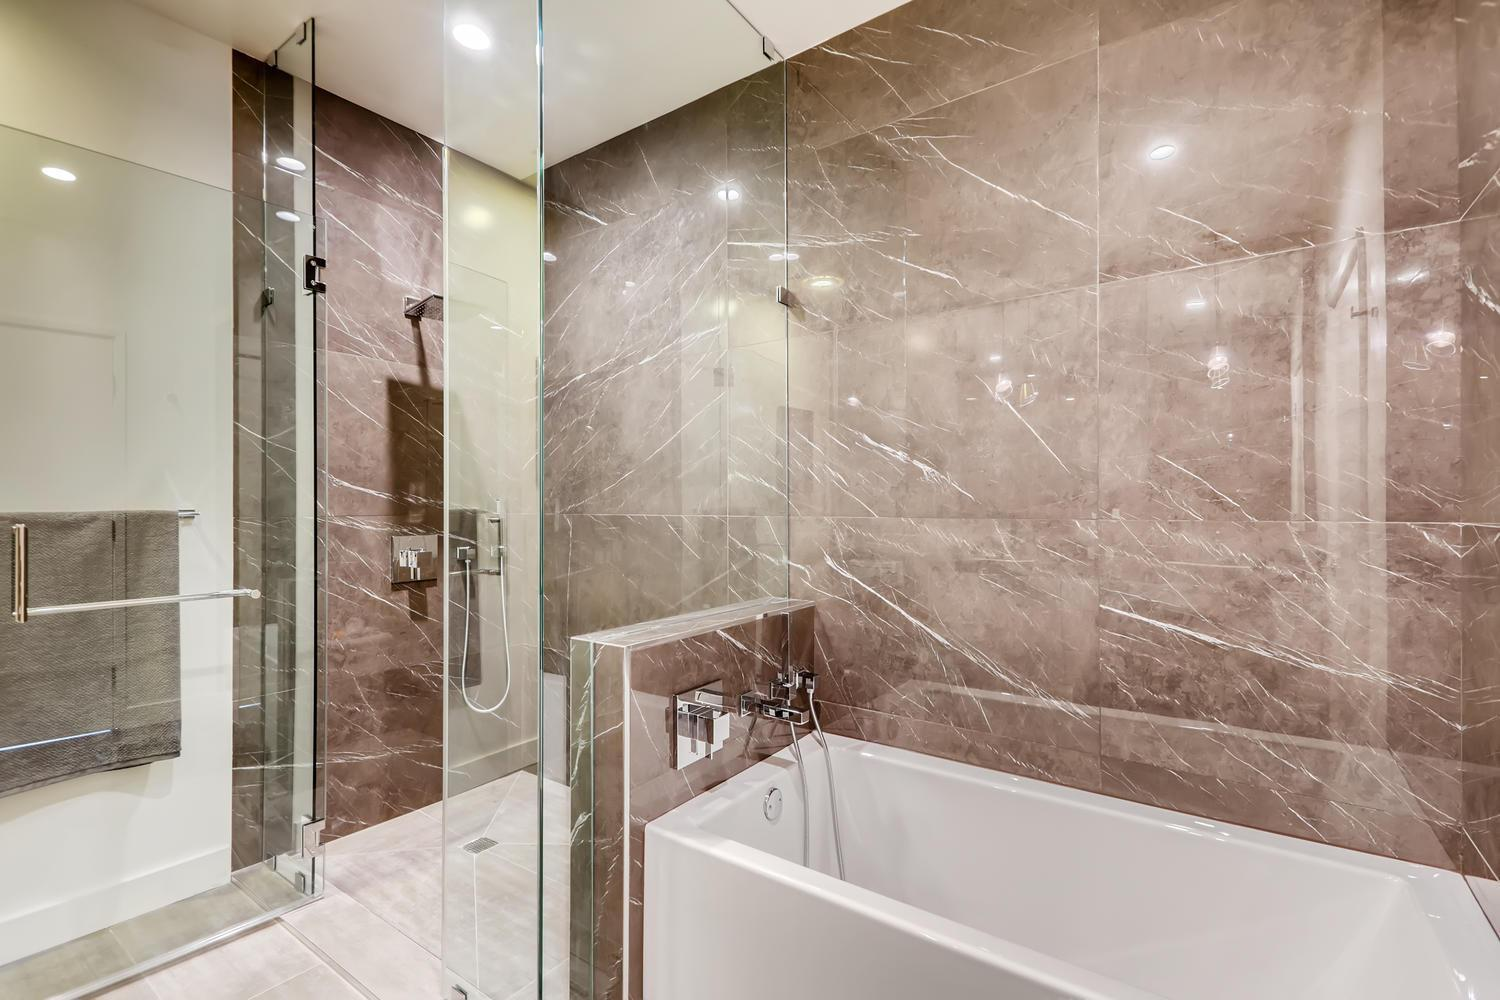 Bathroom featured in the Plan C By Adept Urban  in Los Angeles, CA